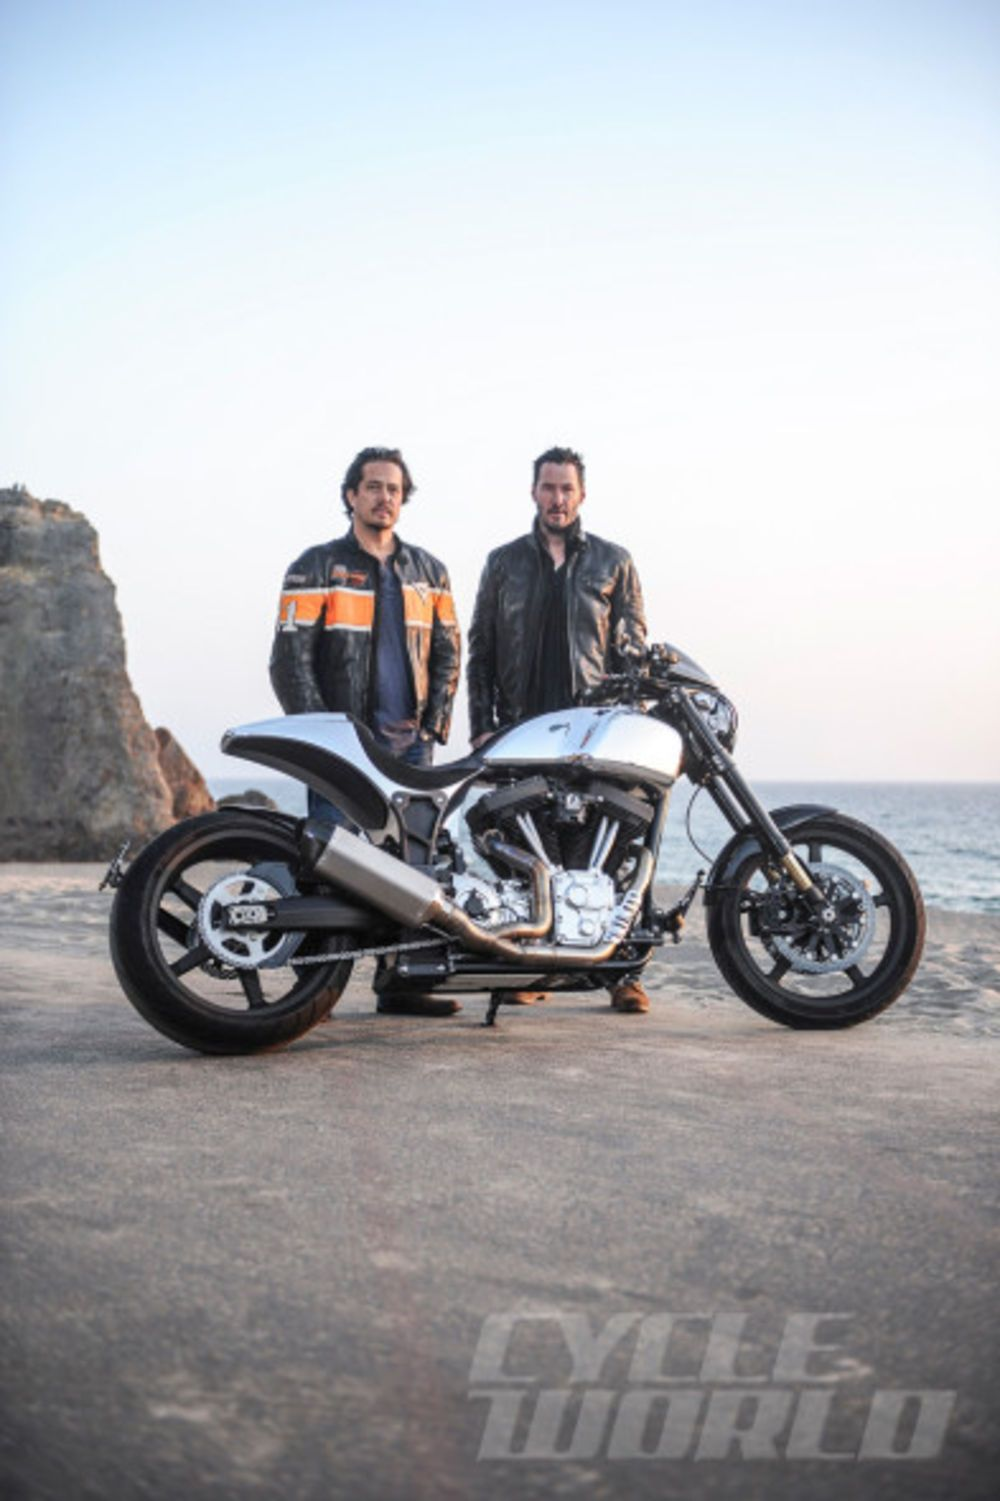 Gard Hollinger and Keanu Reeves and the Arch Motorcycle